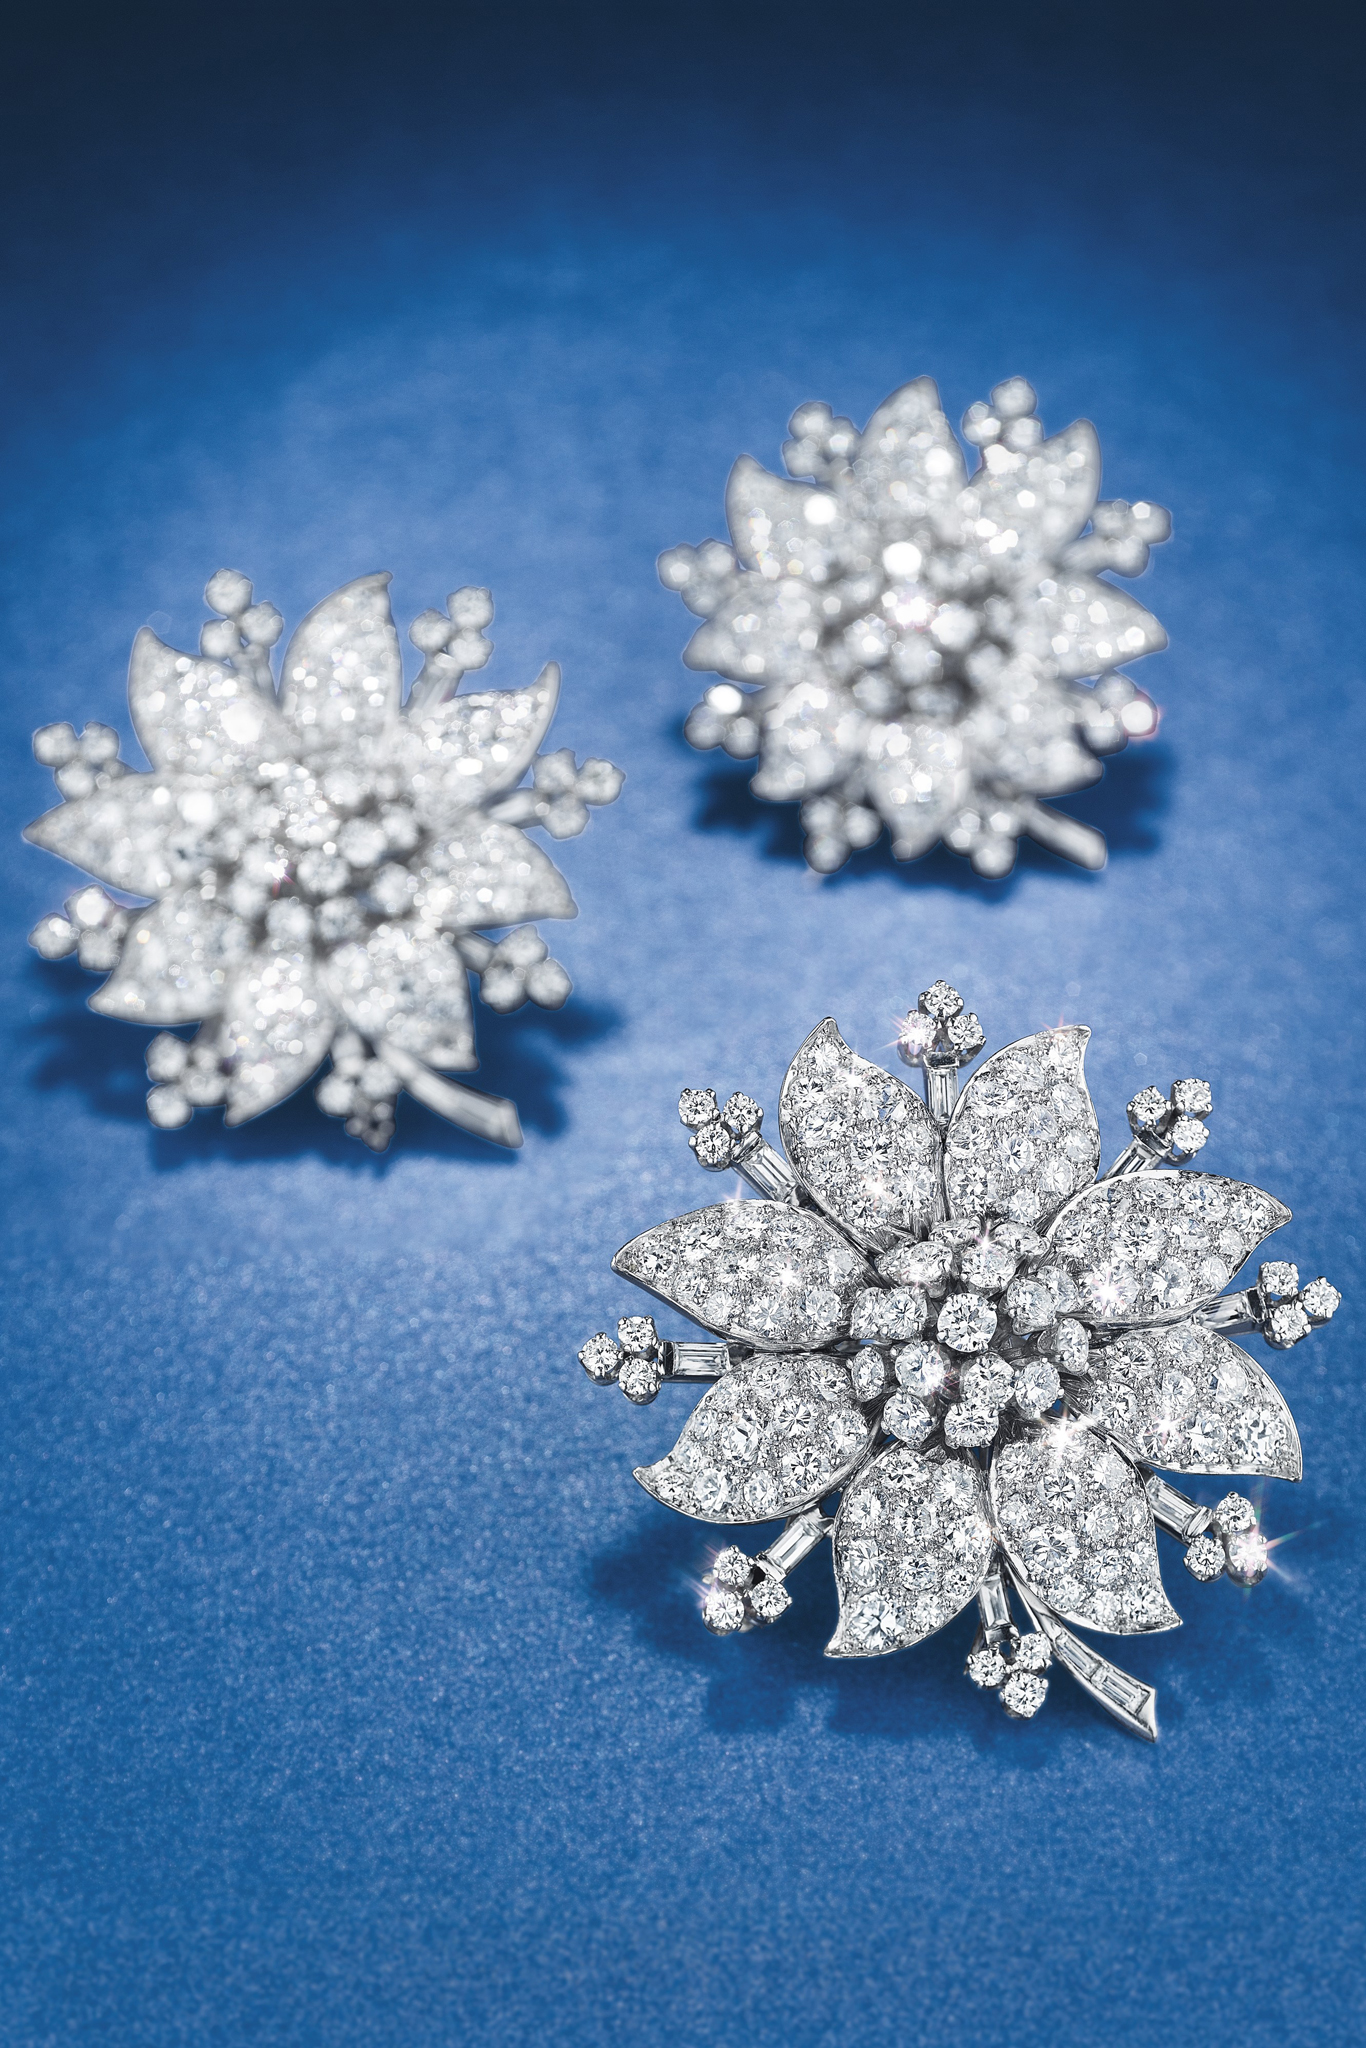 A diamond flower necklace with three detachable brooches by Van Cleef & Arpels